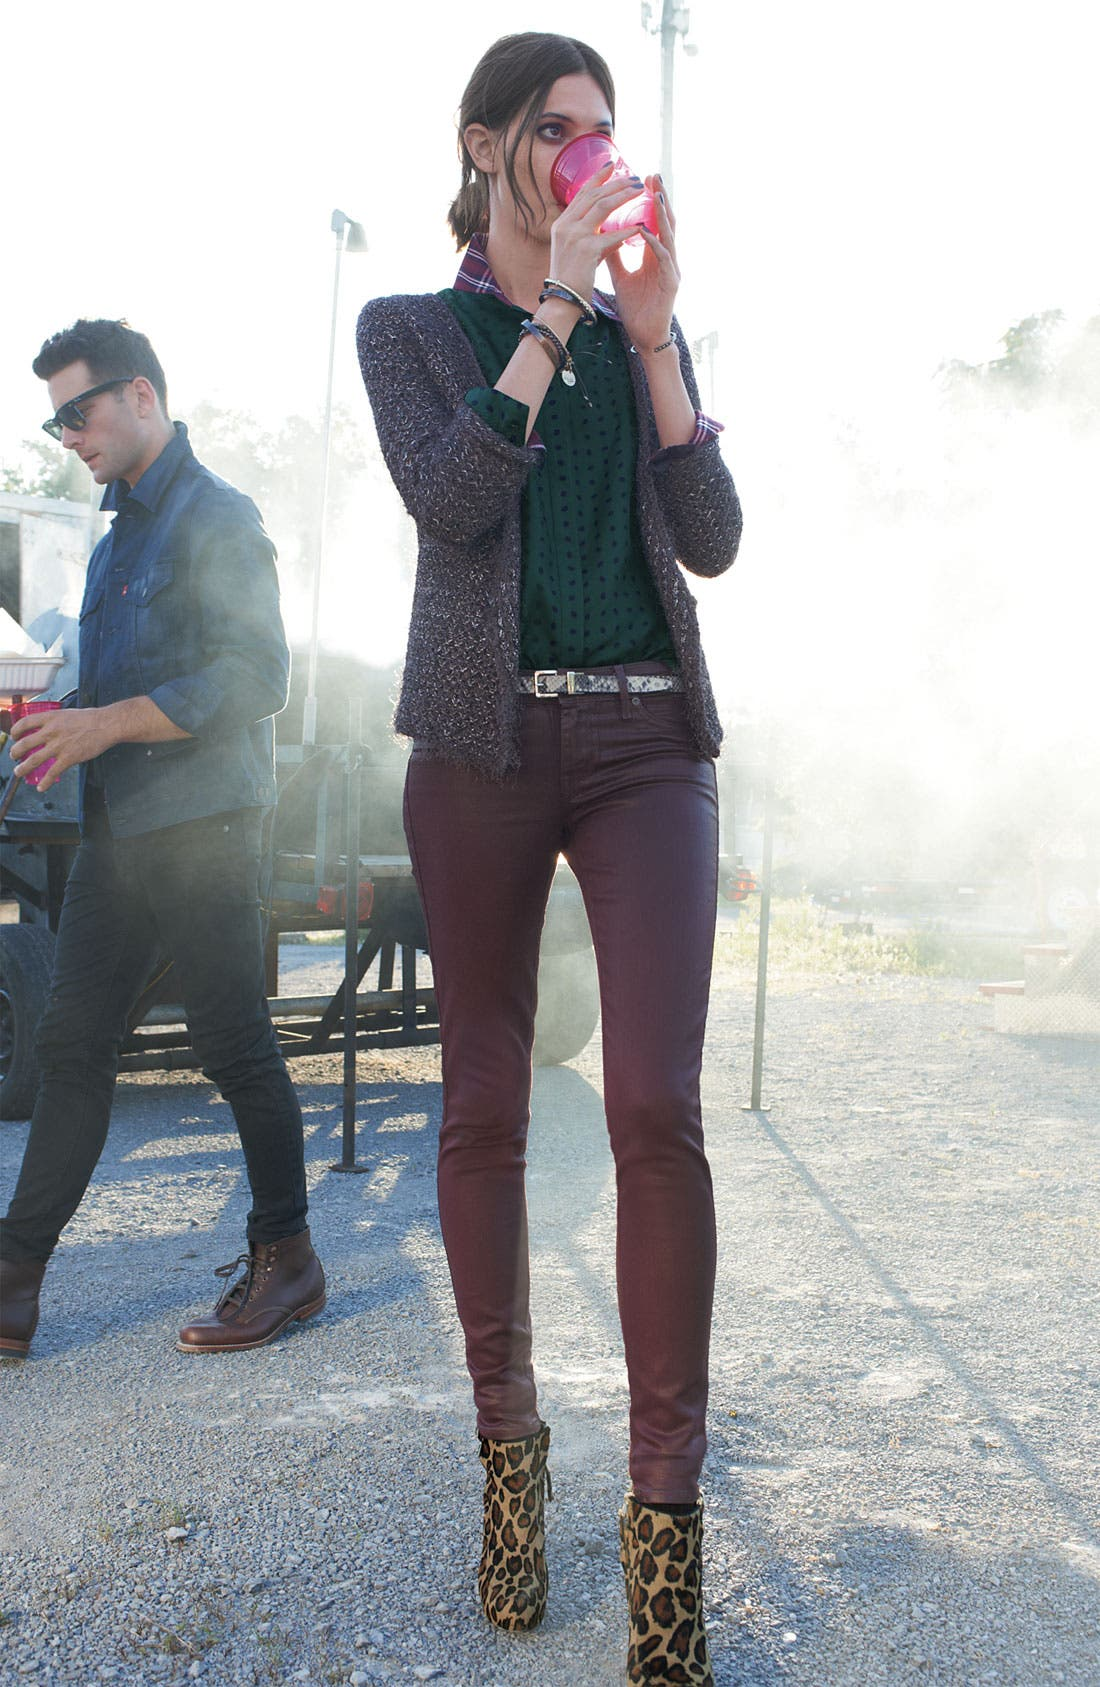 Alternate Image 1 Selected - Plastic Island Cardigan, Gibson Shirt & Rich & Skinny Jeans